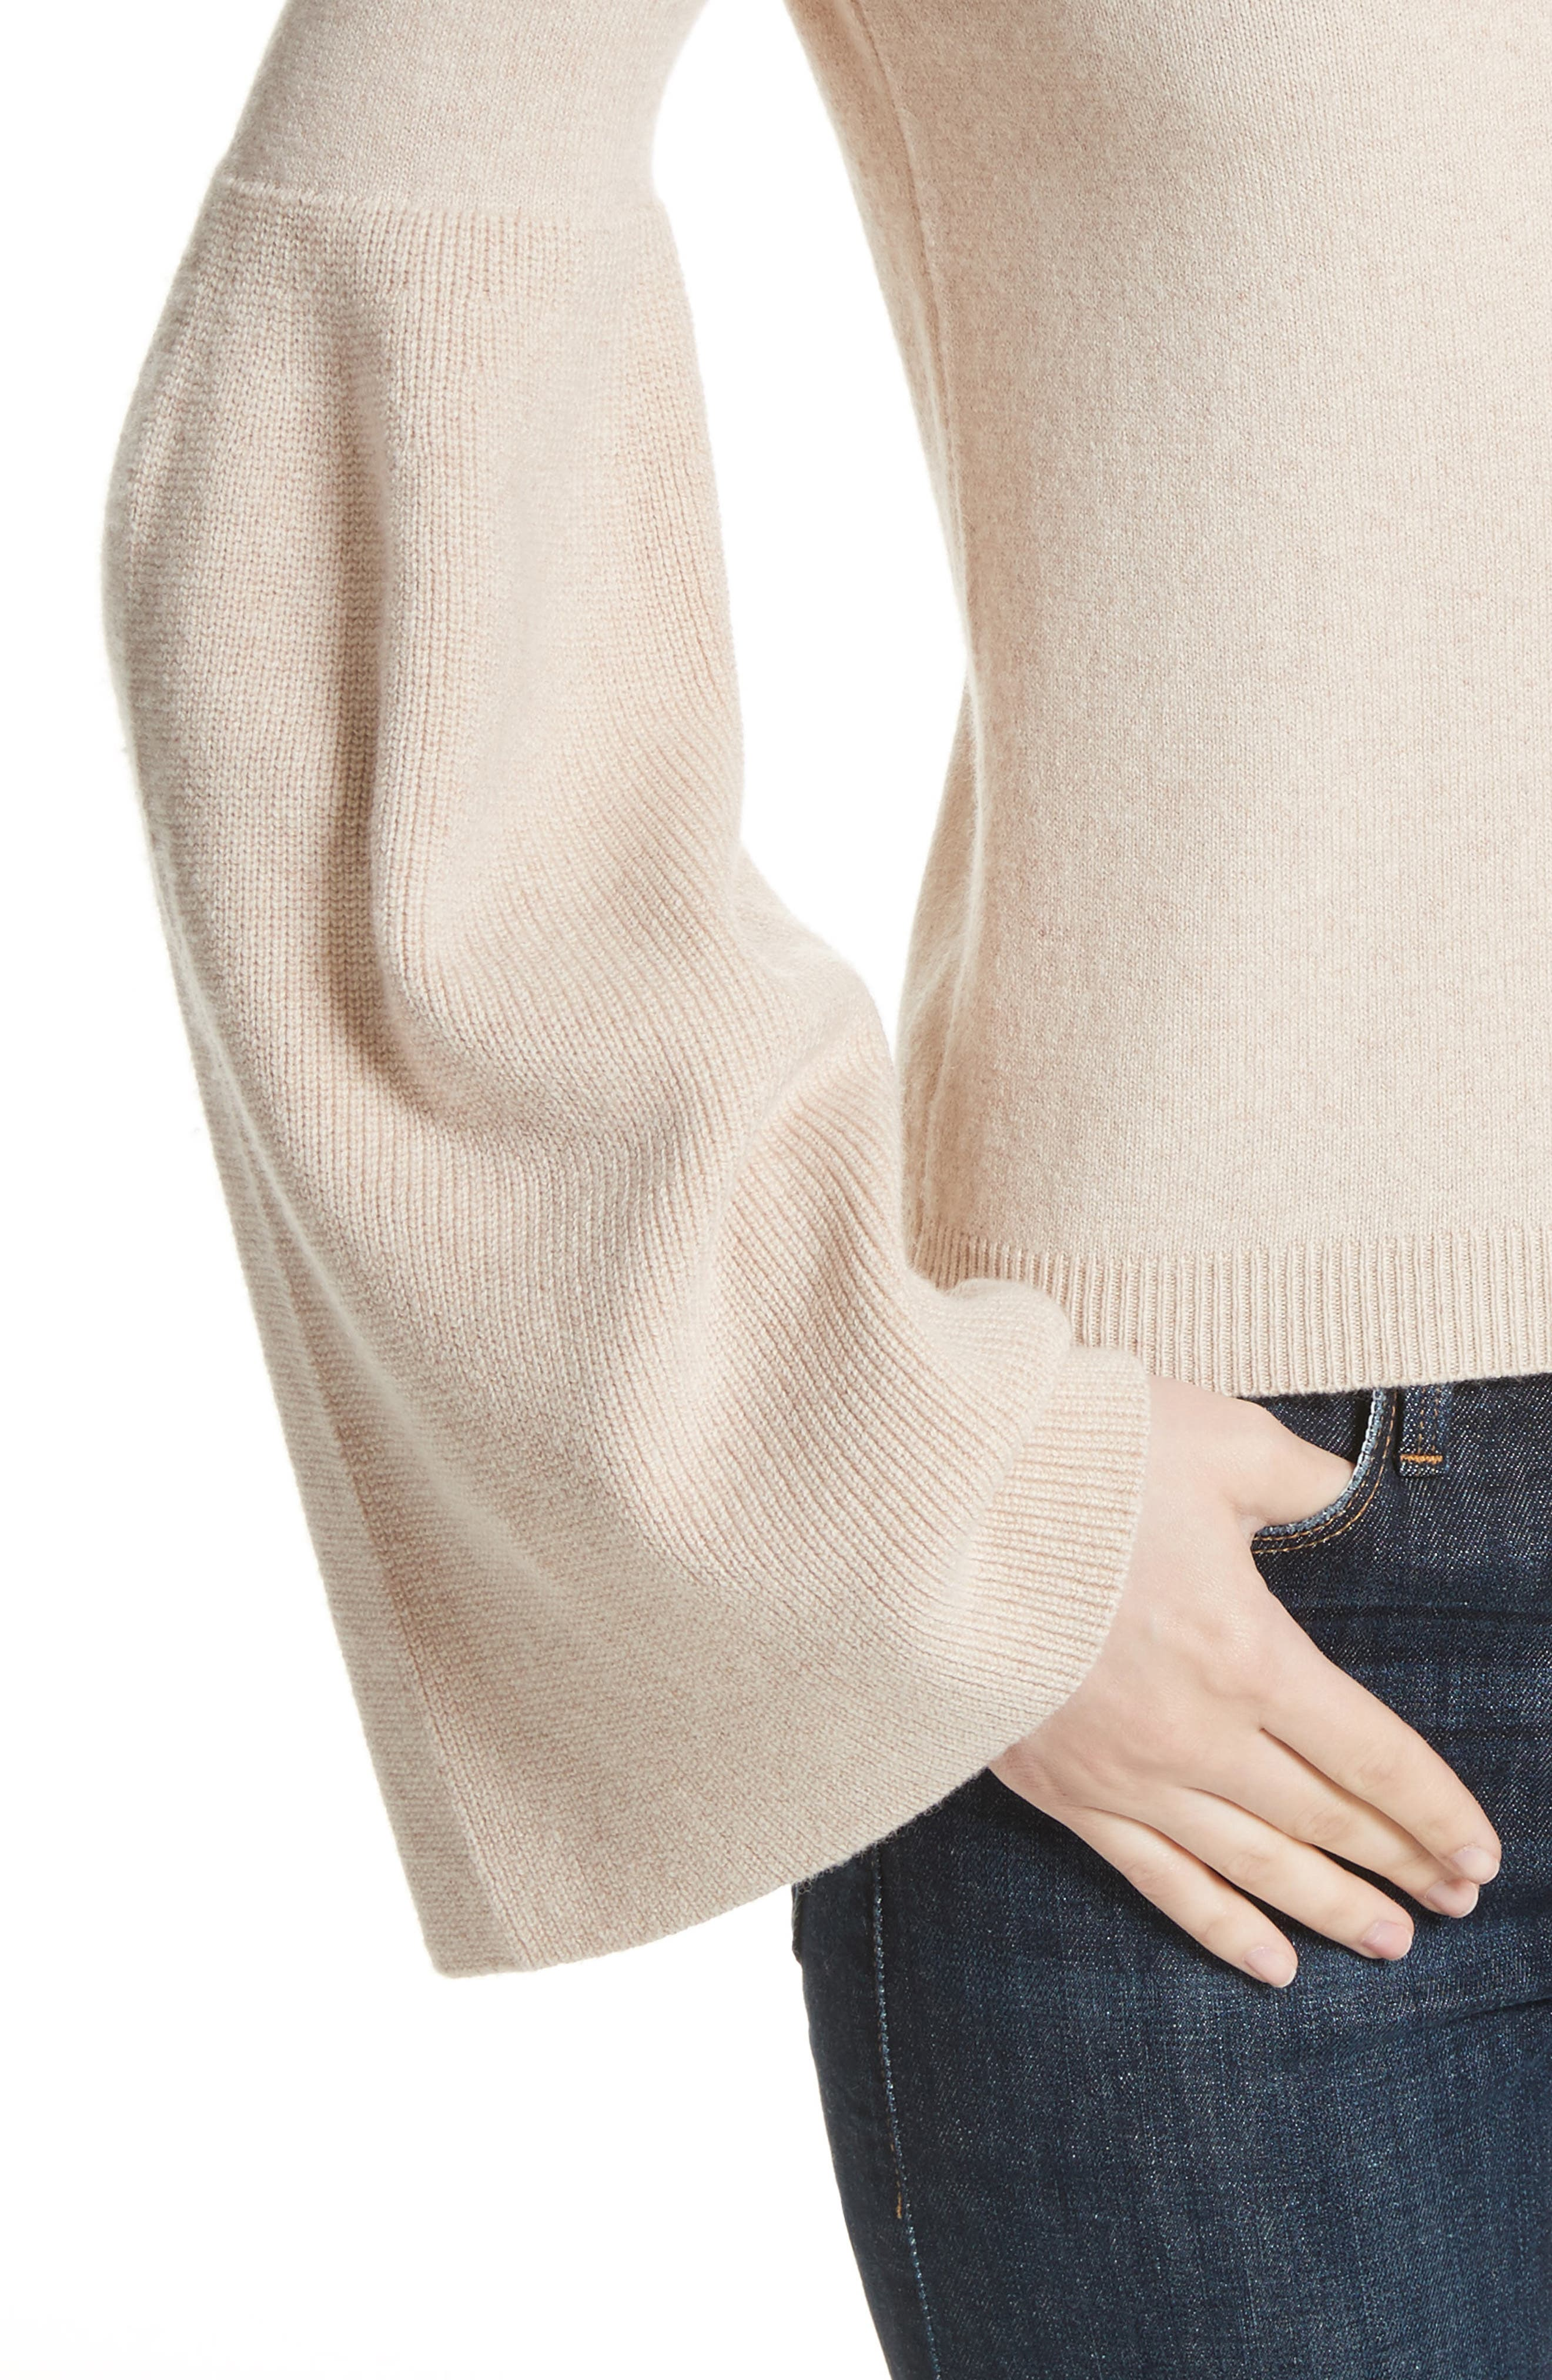 Parson Bell Sleeve Sweater,                             Alternate thumbnail 4, color,                             Nude